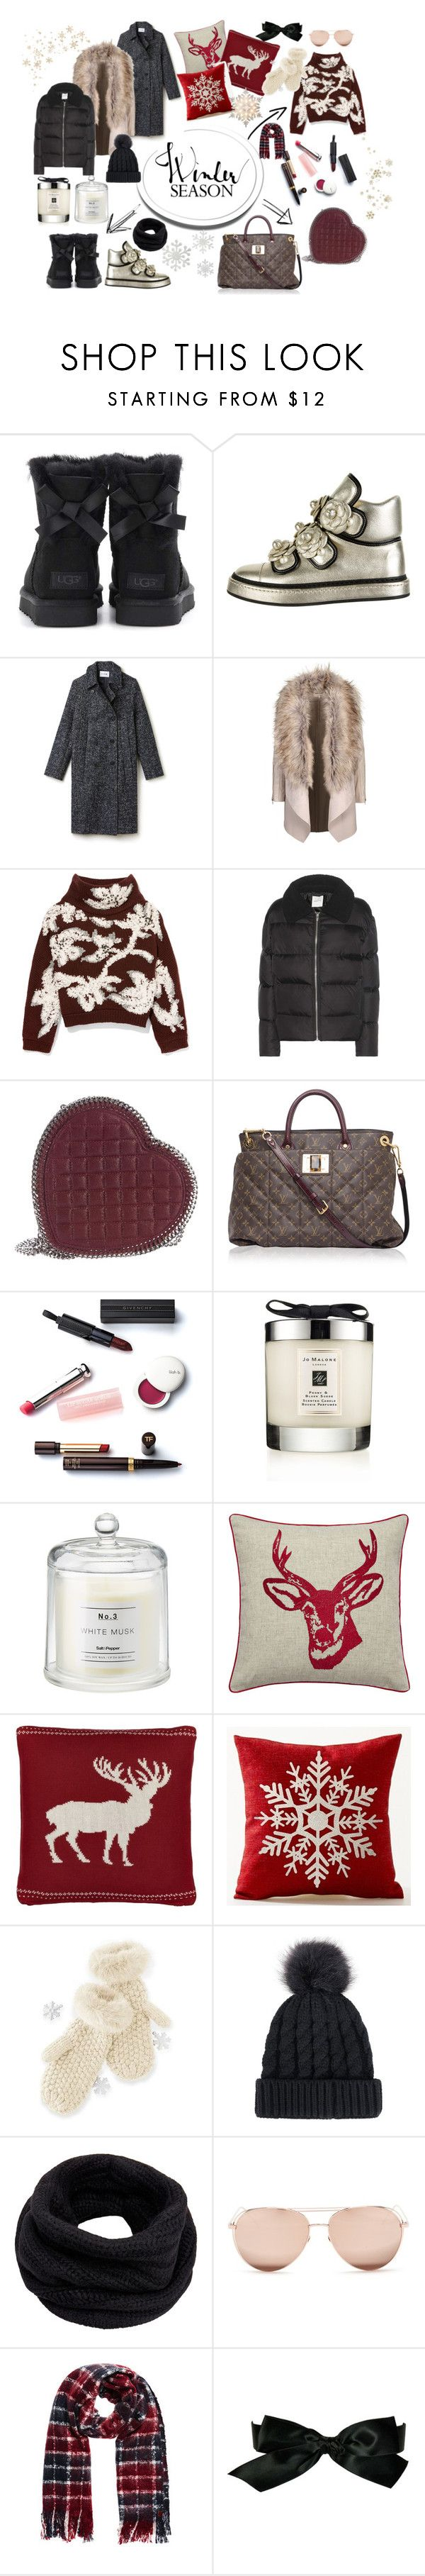 """""""Winter Season"""" by grace-n-fashion ❤ liked on Polyvore featuring UGG, Chanel, Lacoste, Brunello Cucinelli, Wood Wood, STELLA McCARTNEY, Louis Vuitton, Christian Dior, Jo Malone and John Lewis"""